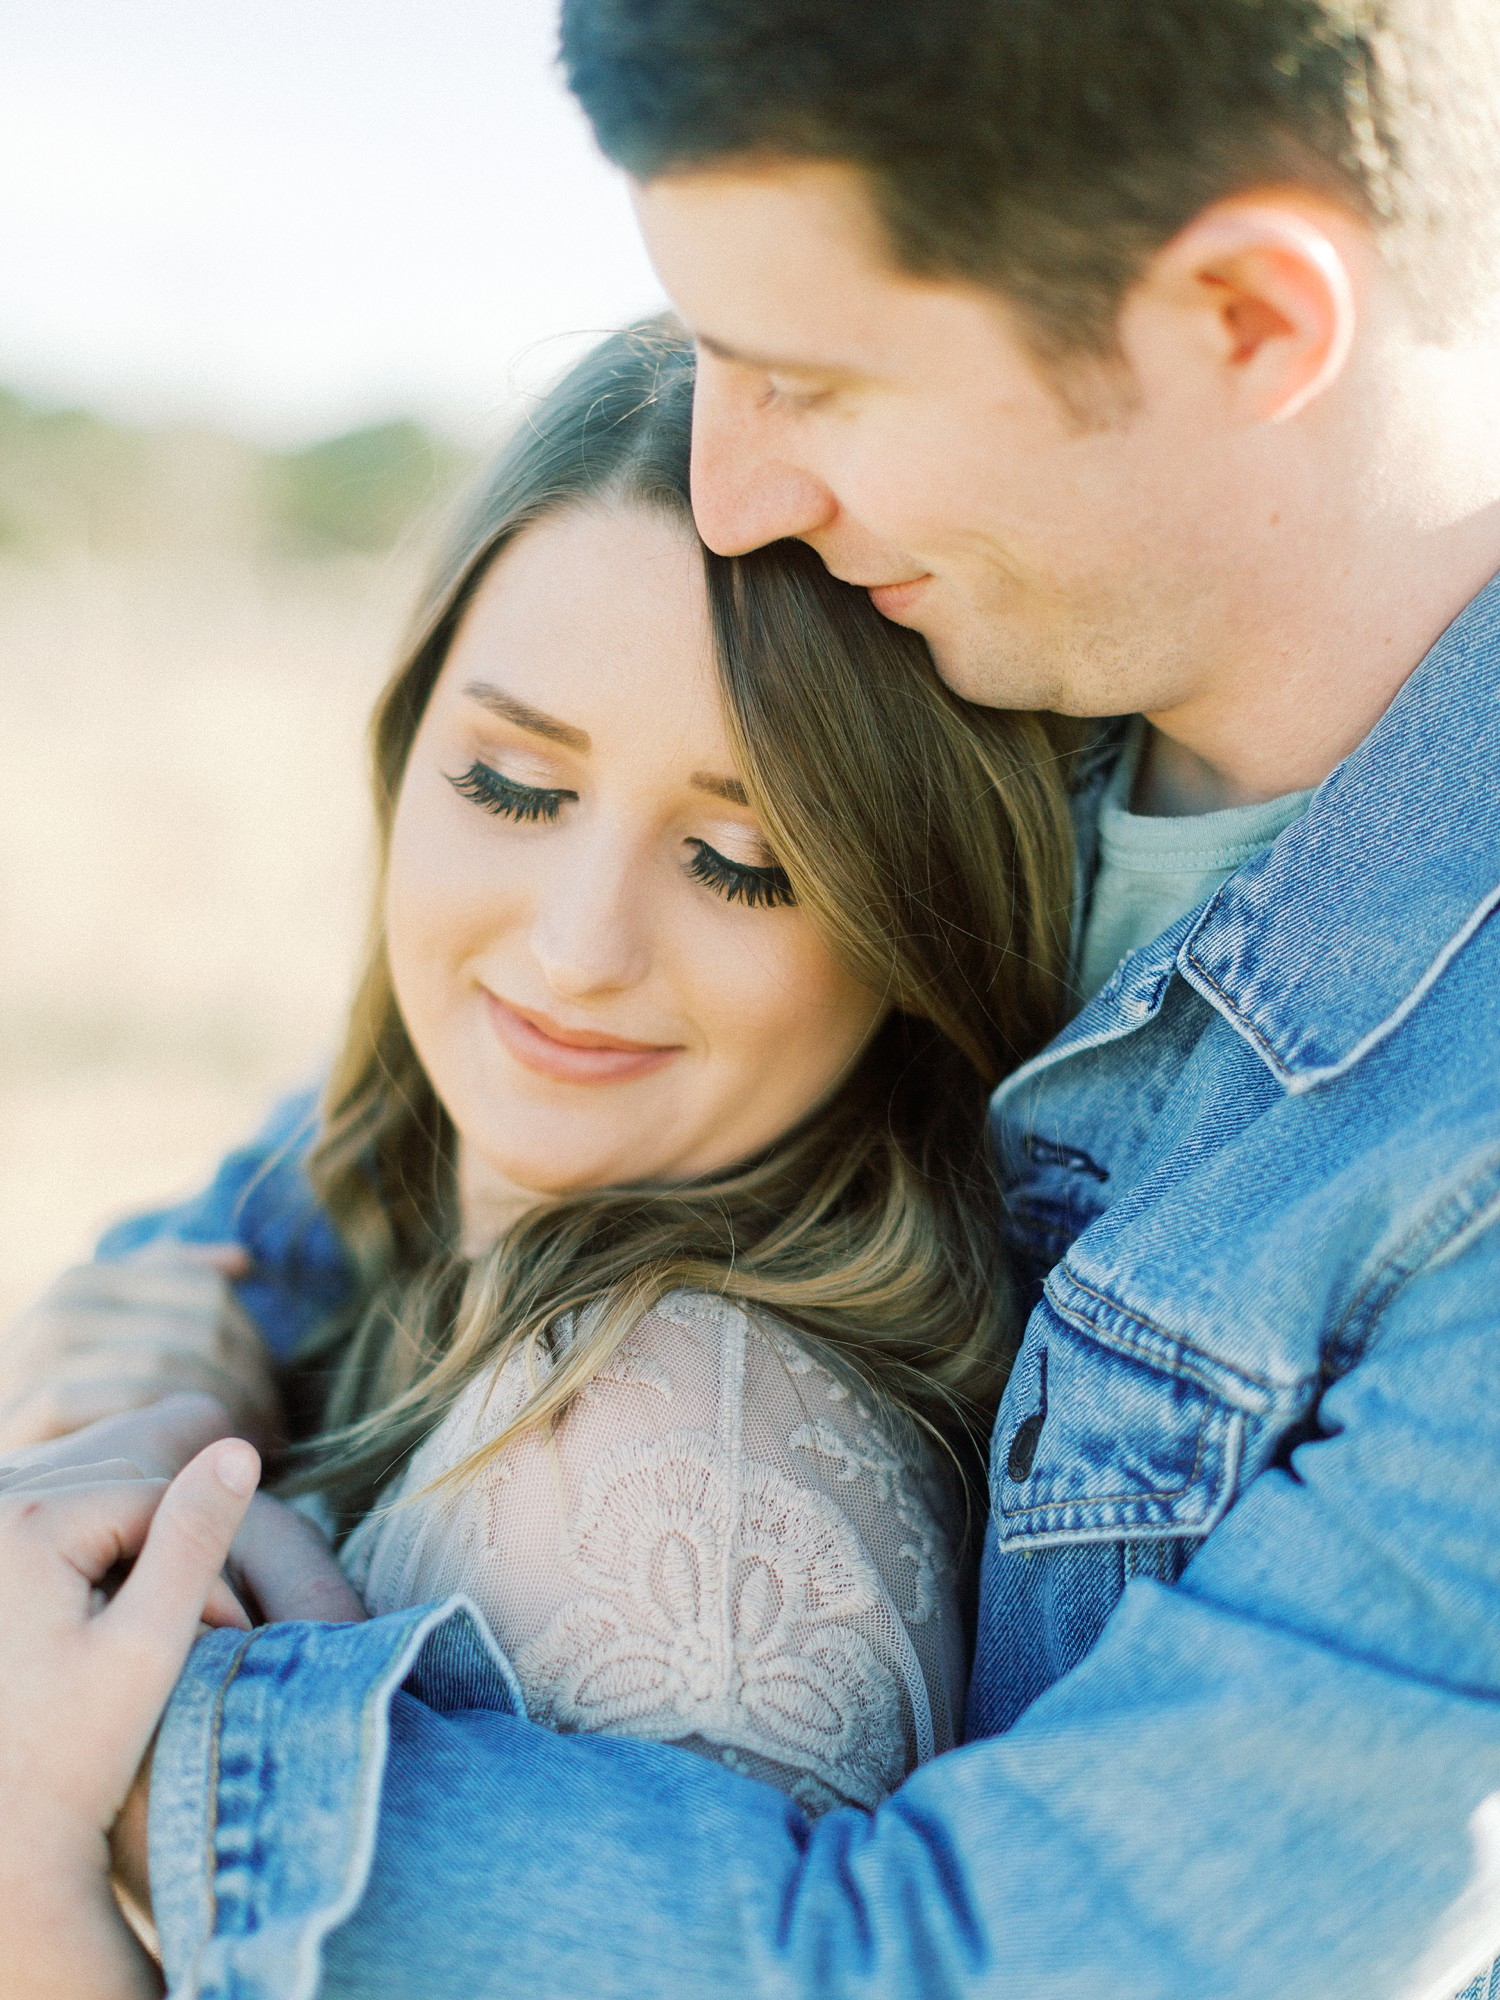 Austin Wedding Photographer Proposal Story Idea